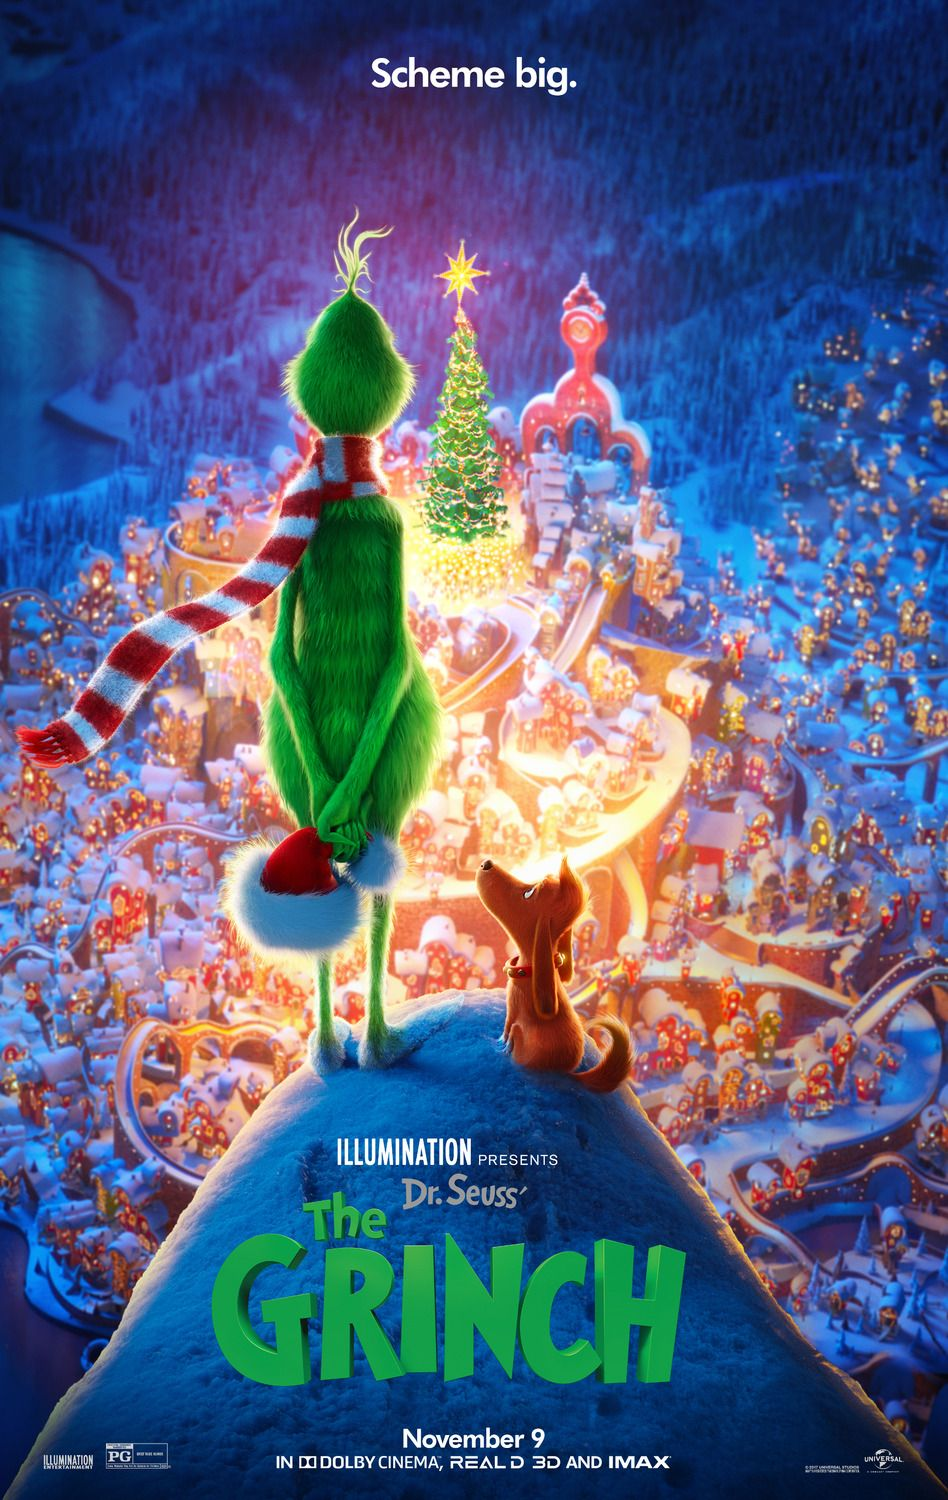 The Grinch Movie Clip And Lyric Videos Https Teaser Trailer Com Movie The Grinch Thegrinch The The Grinch Full Movie The Grinch Movie Watch The Grinch